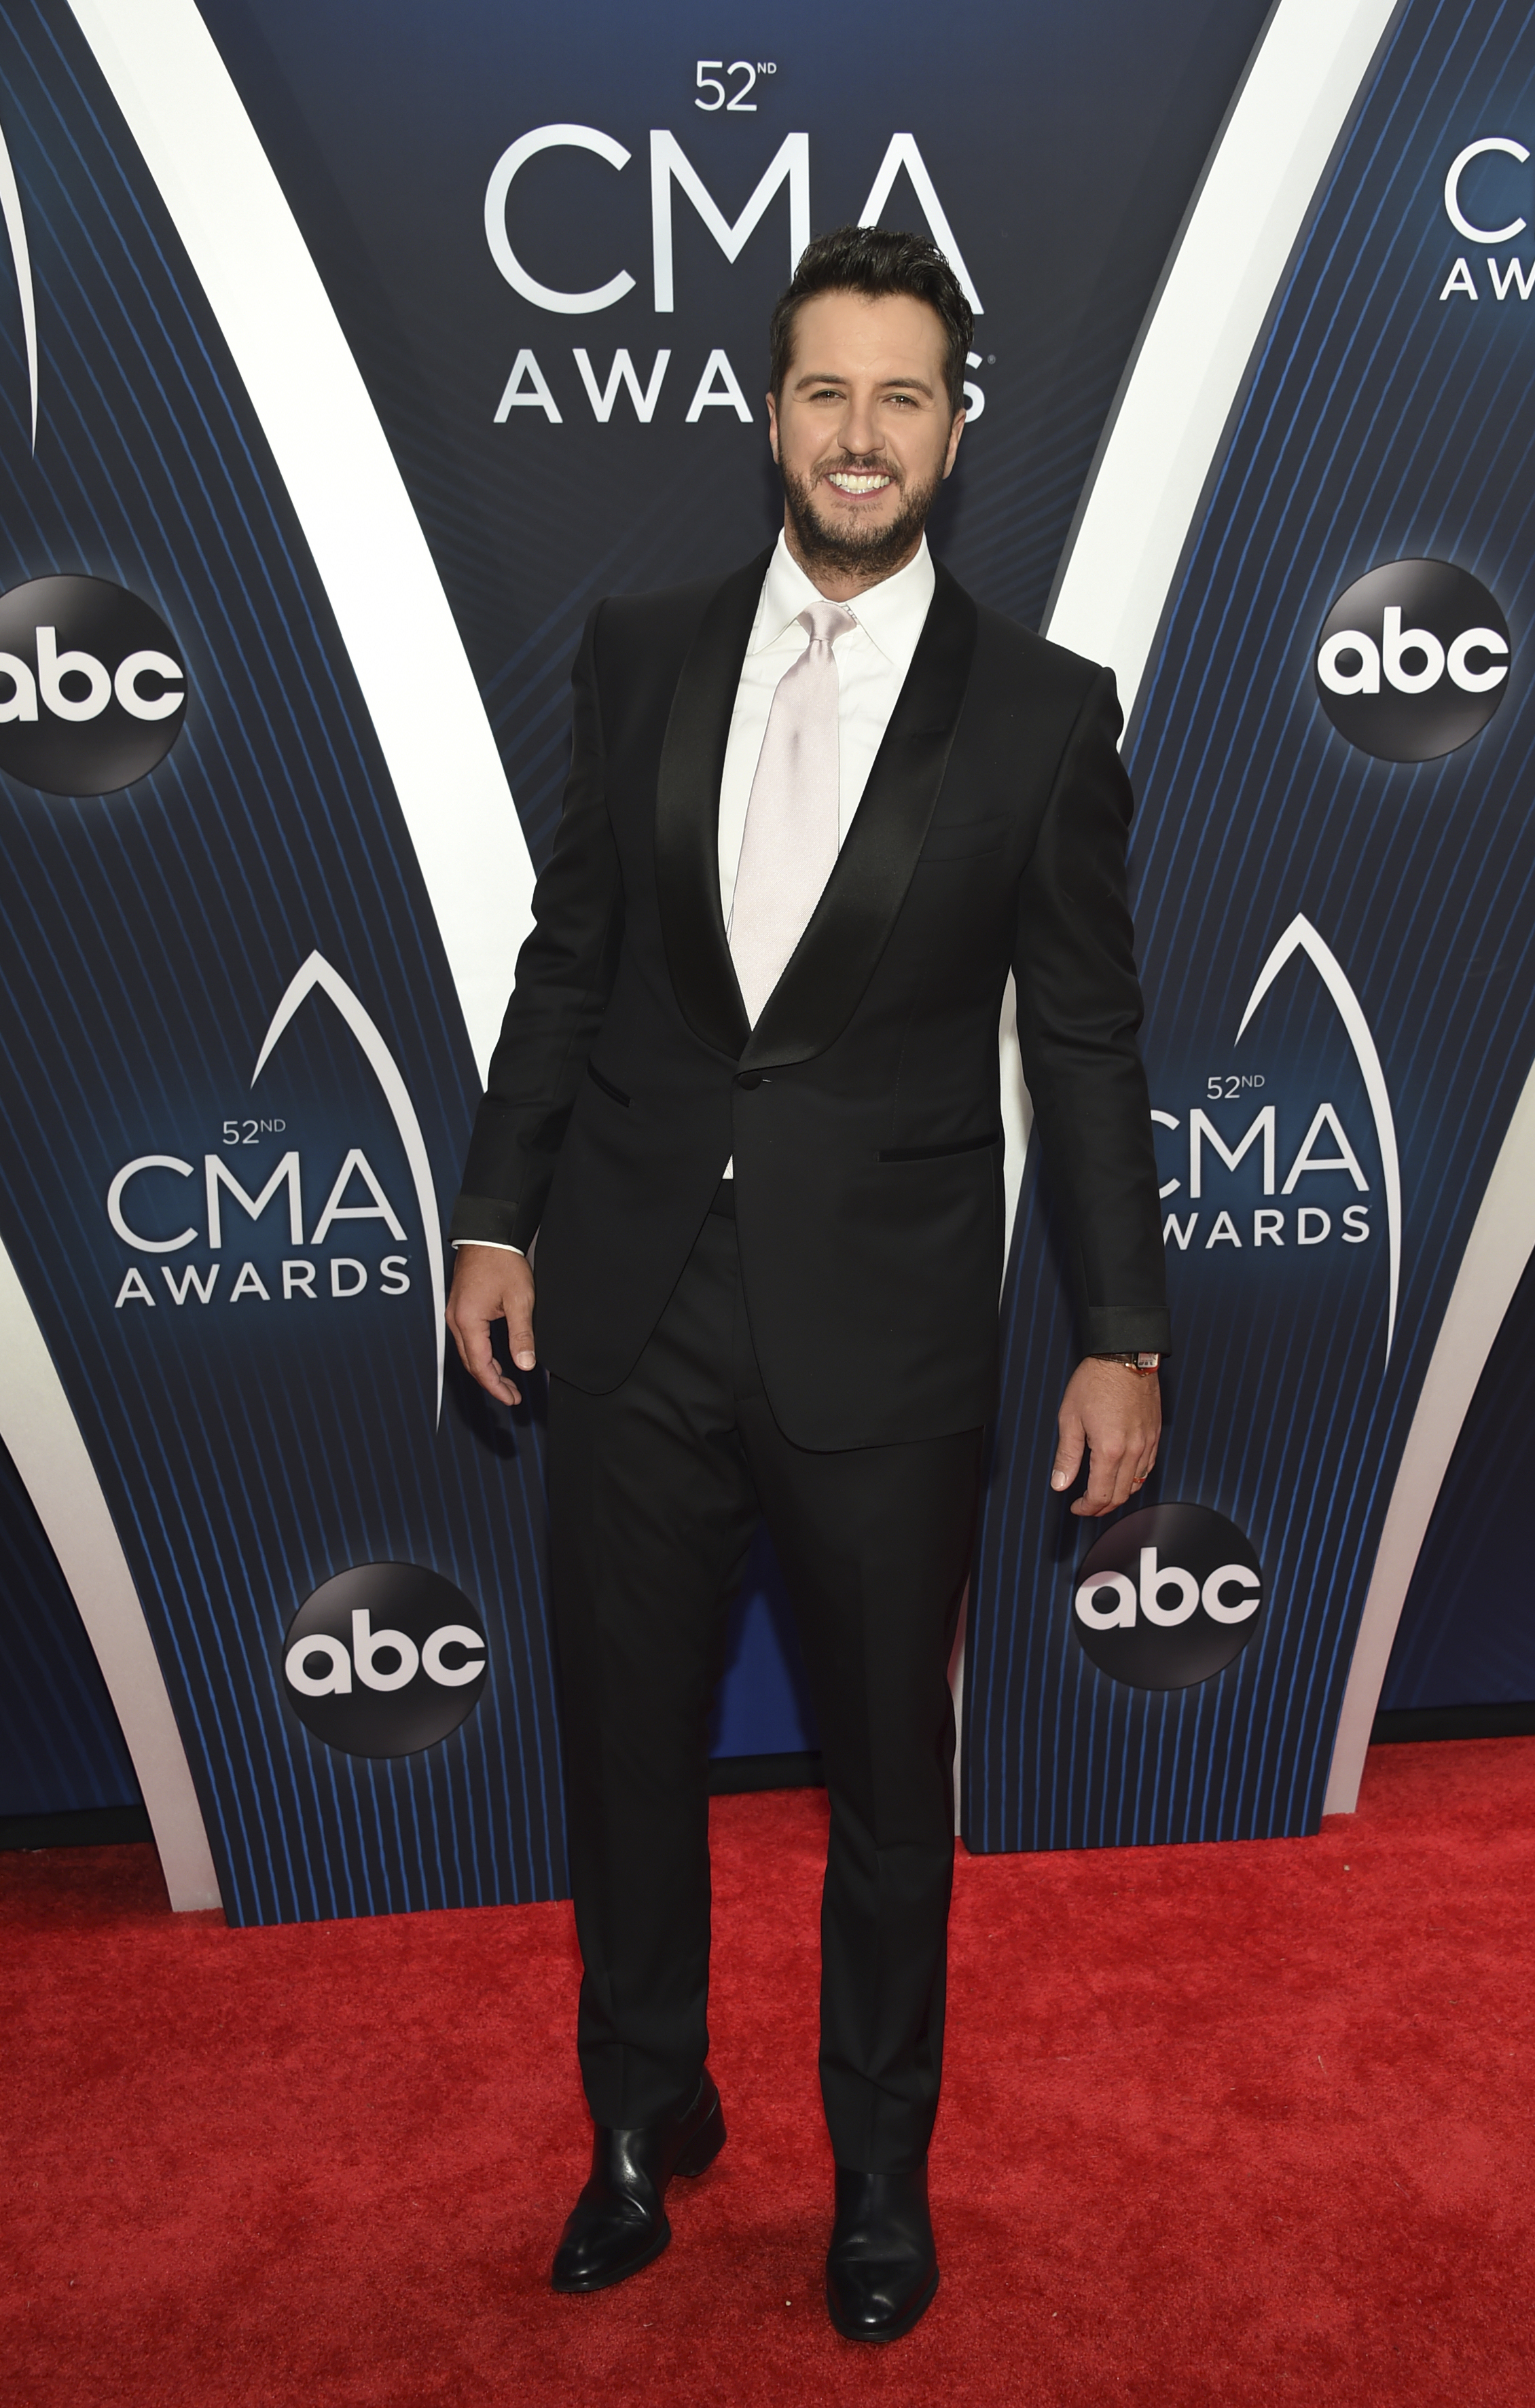 "<div class=""meta image-caption""><div class=""origin-logo origin-image ap""><span>AP</span></div><span class=""caption-text"">Luke Bryan arrives at the 52nd annual CMA Awards at Bridgestone Arena on Wednesday, Nov. 14, 2018, in Nashville, Tenn. (Photo by Evan Agostini/Invision/AP) (Evan Agostini/Invision/AP)</span></div>"